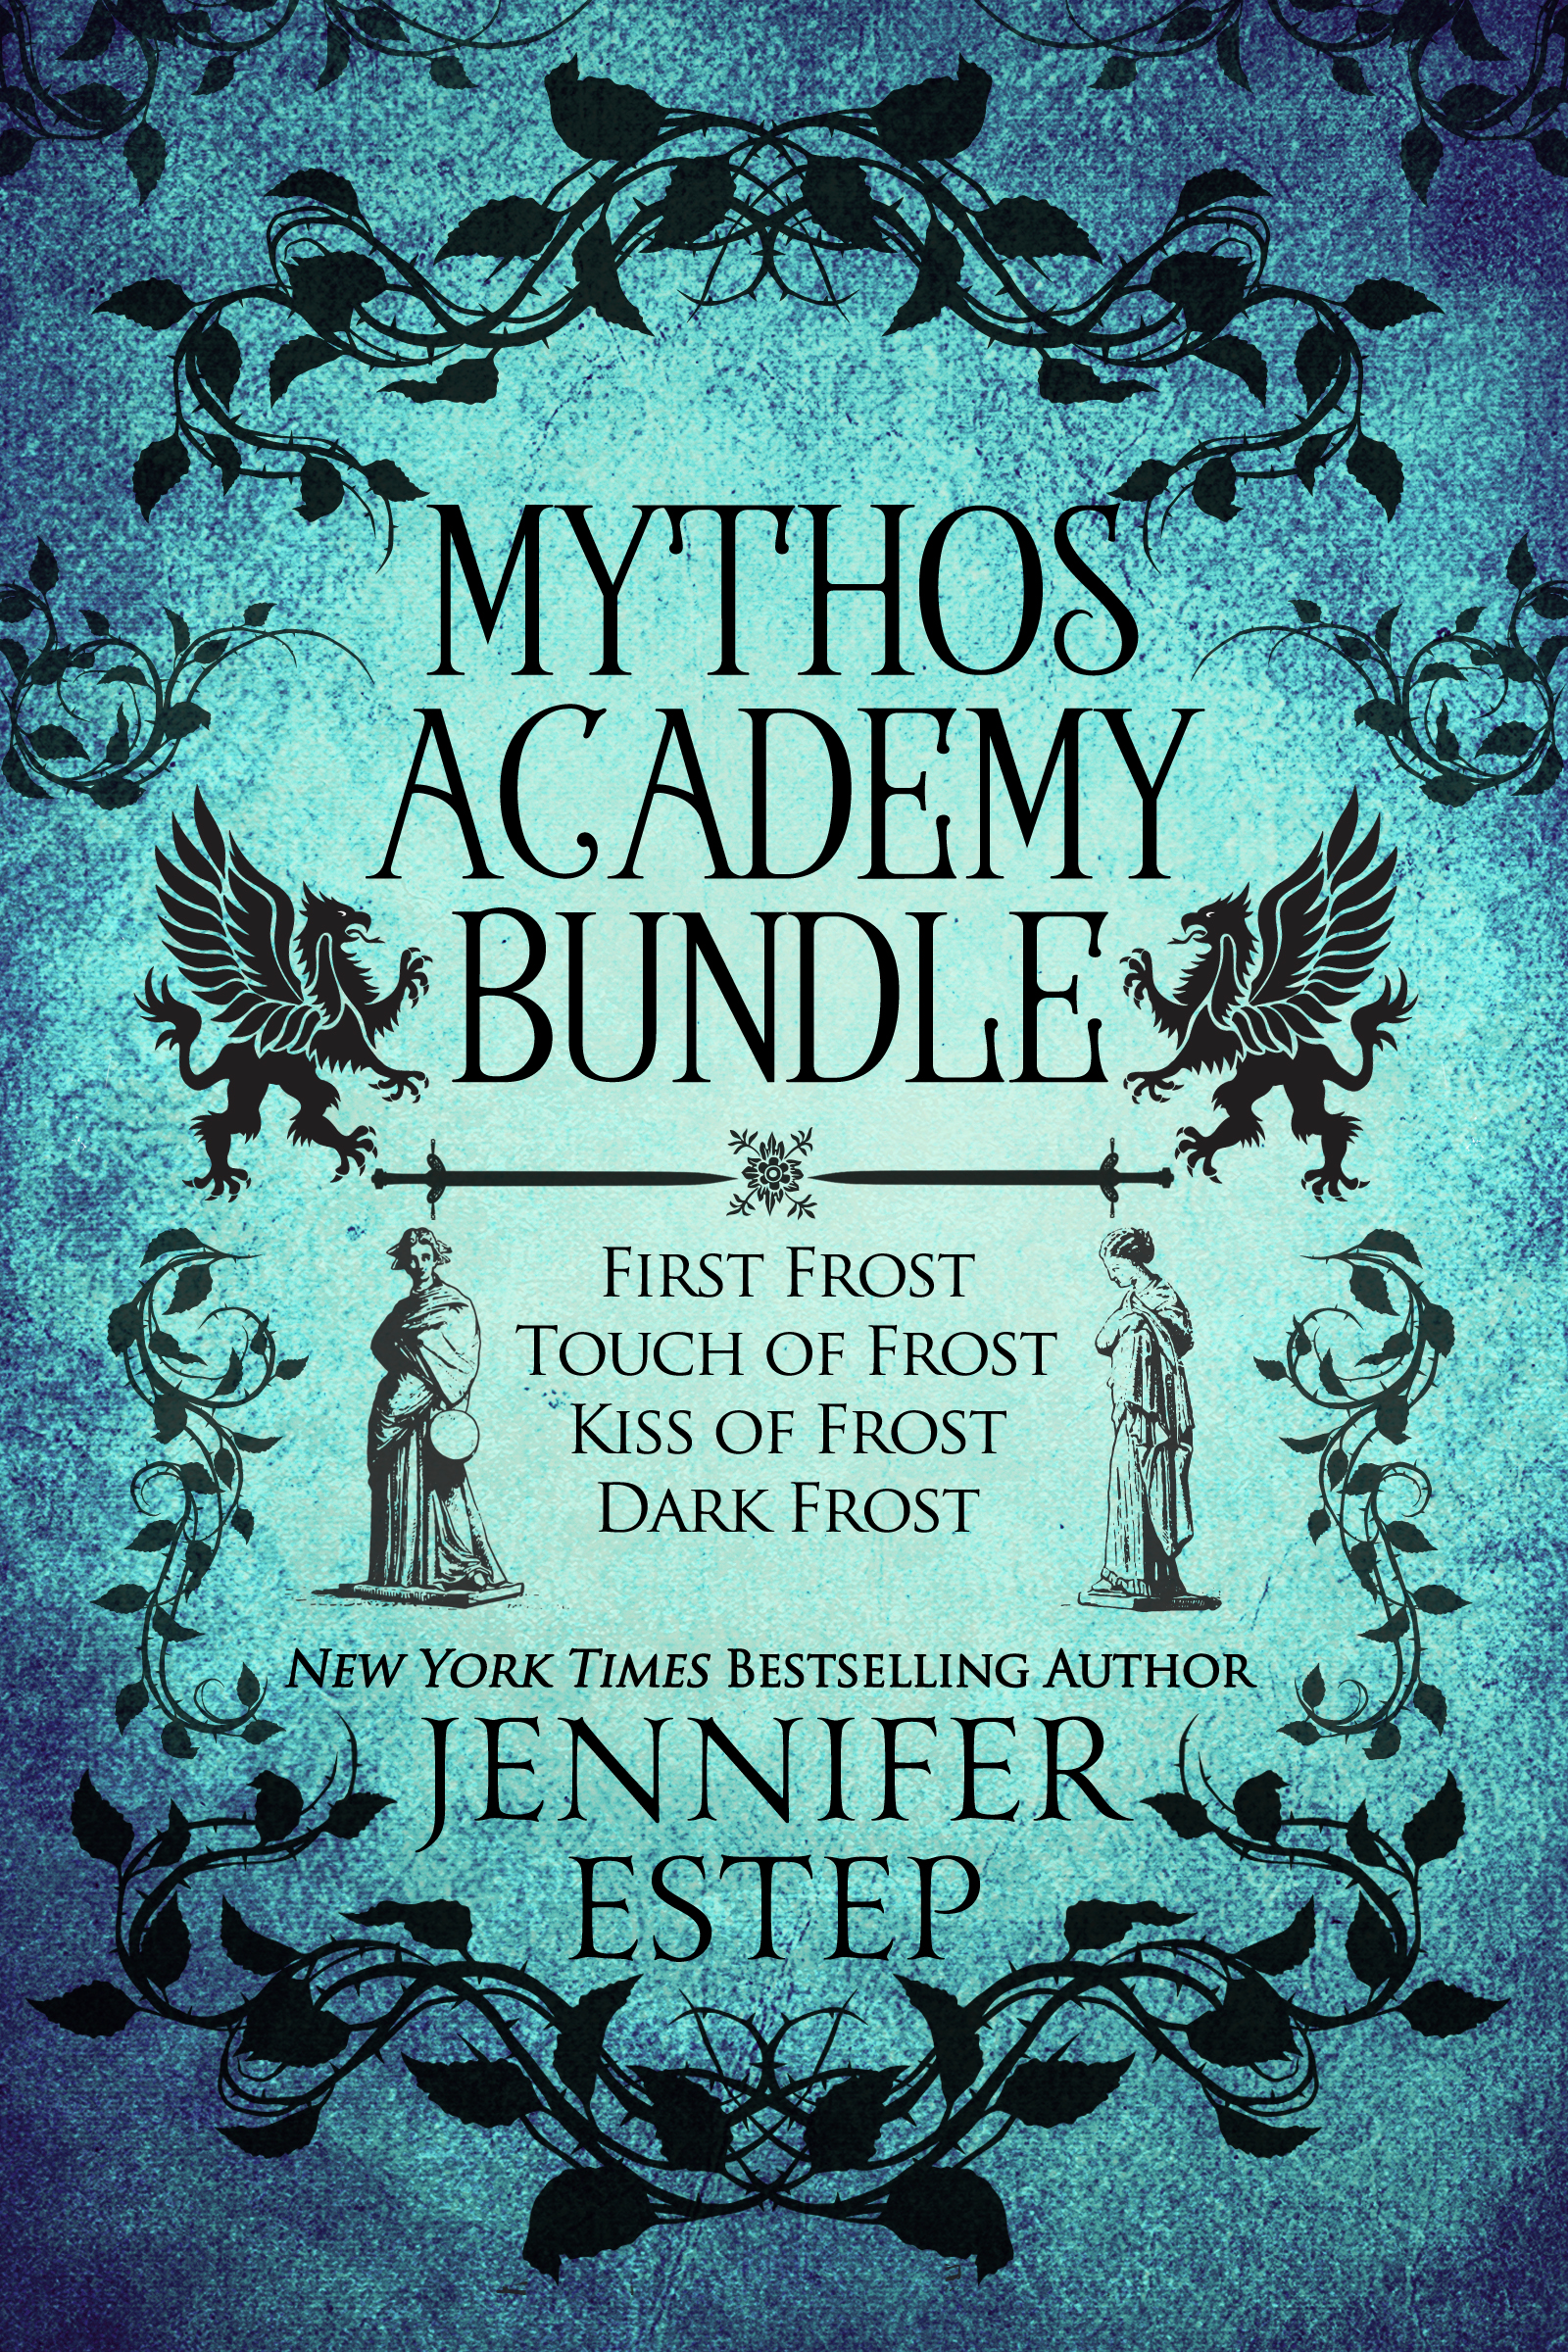 [PDF] [EPUB] Mythos Academy Bundle: First Frost, Touch of Frost, Kiss of Frost and Dark Frost (The Mythos Academy) Download by Jennifer Estep